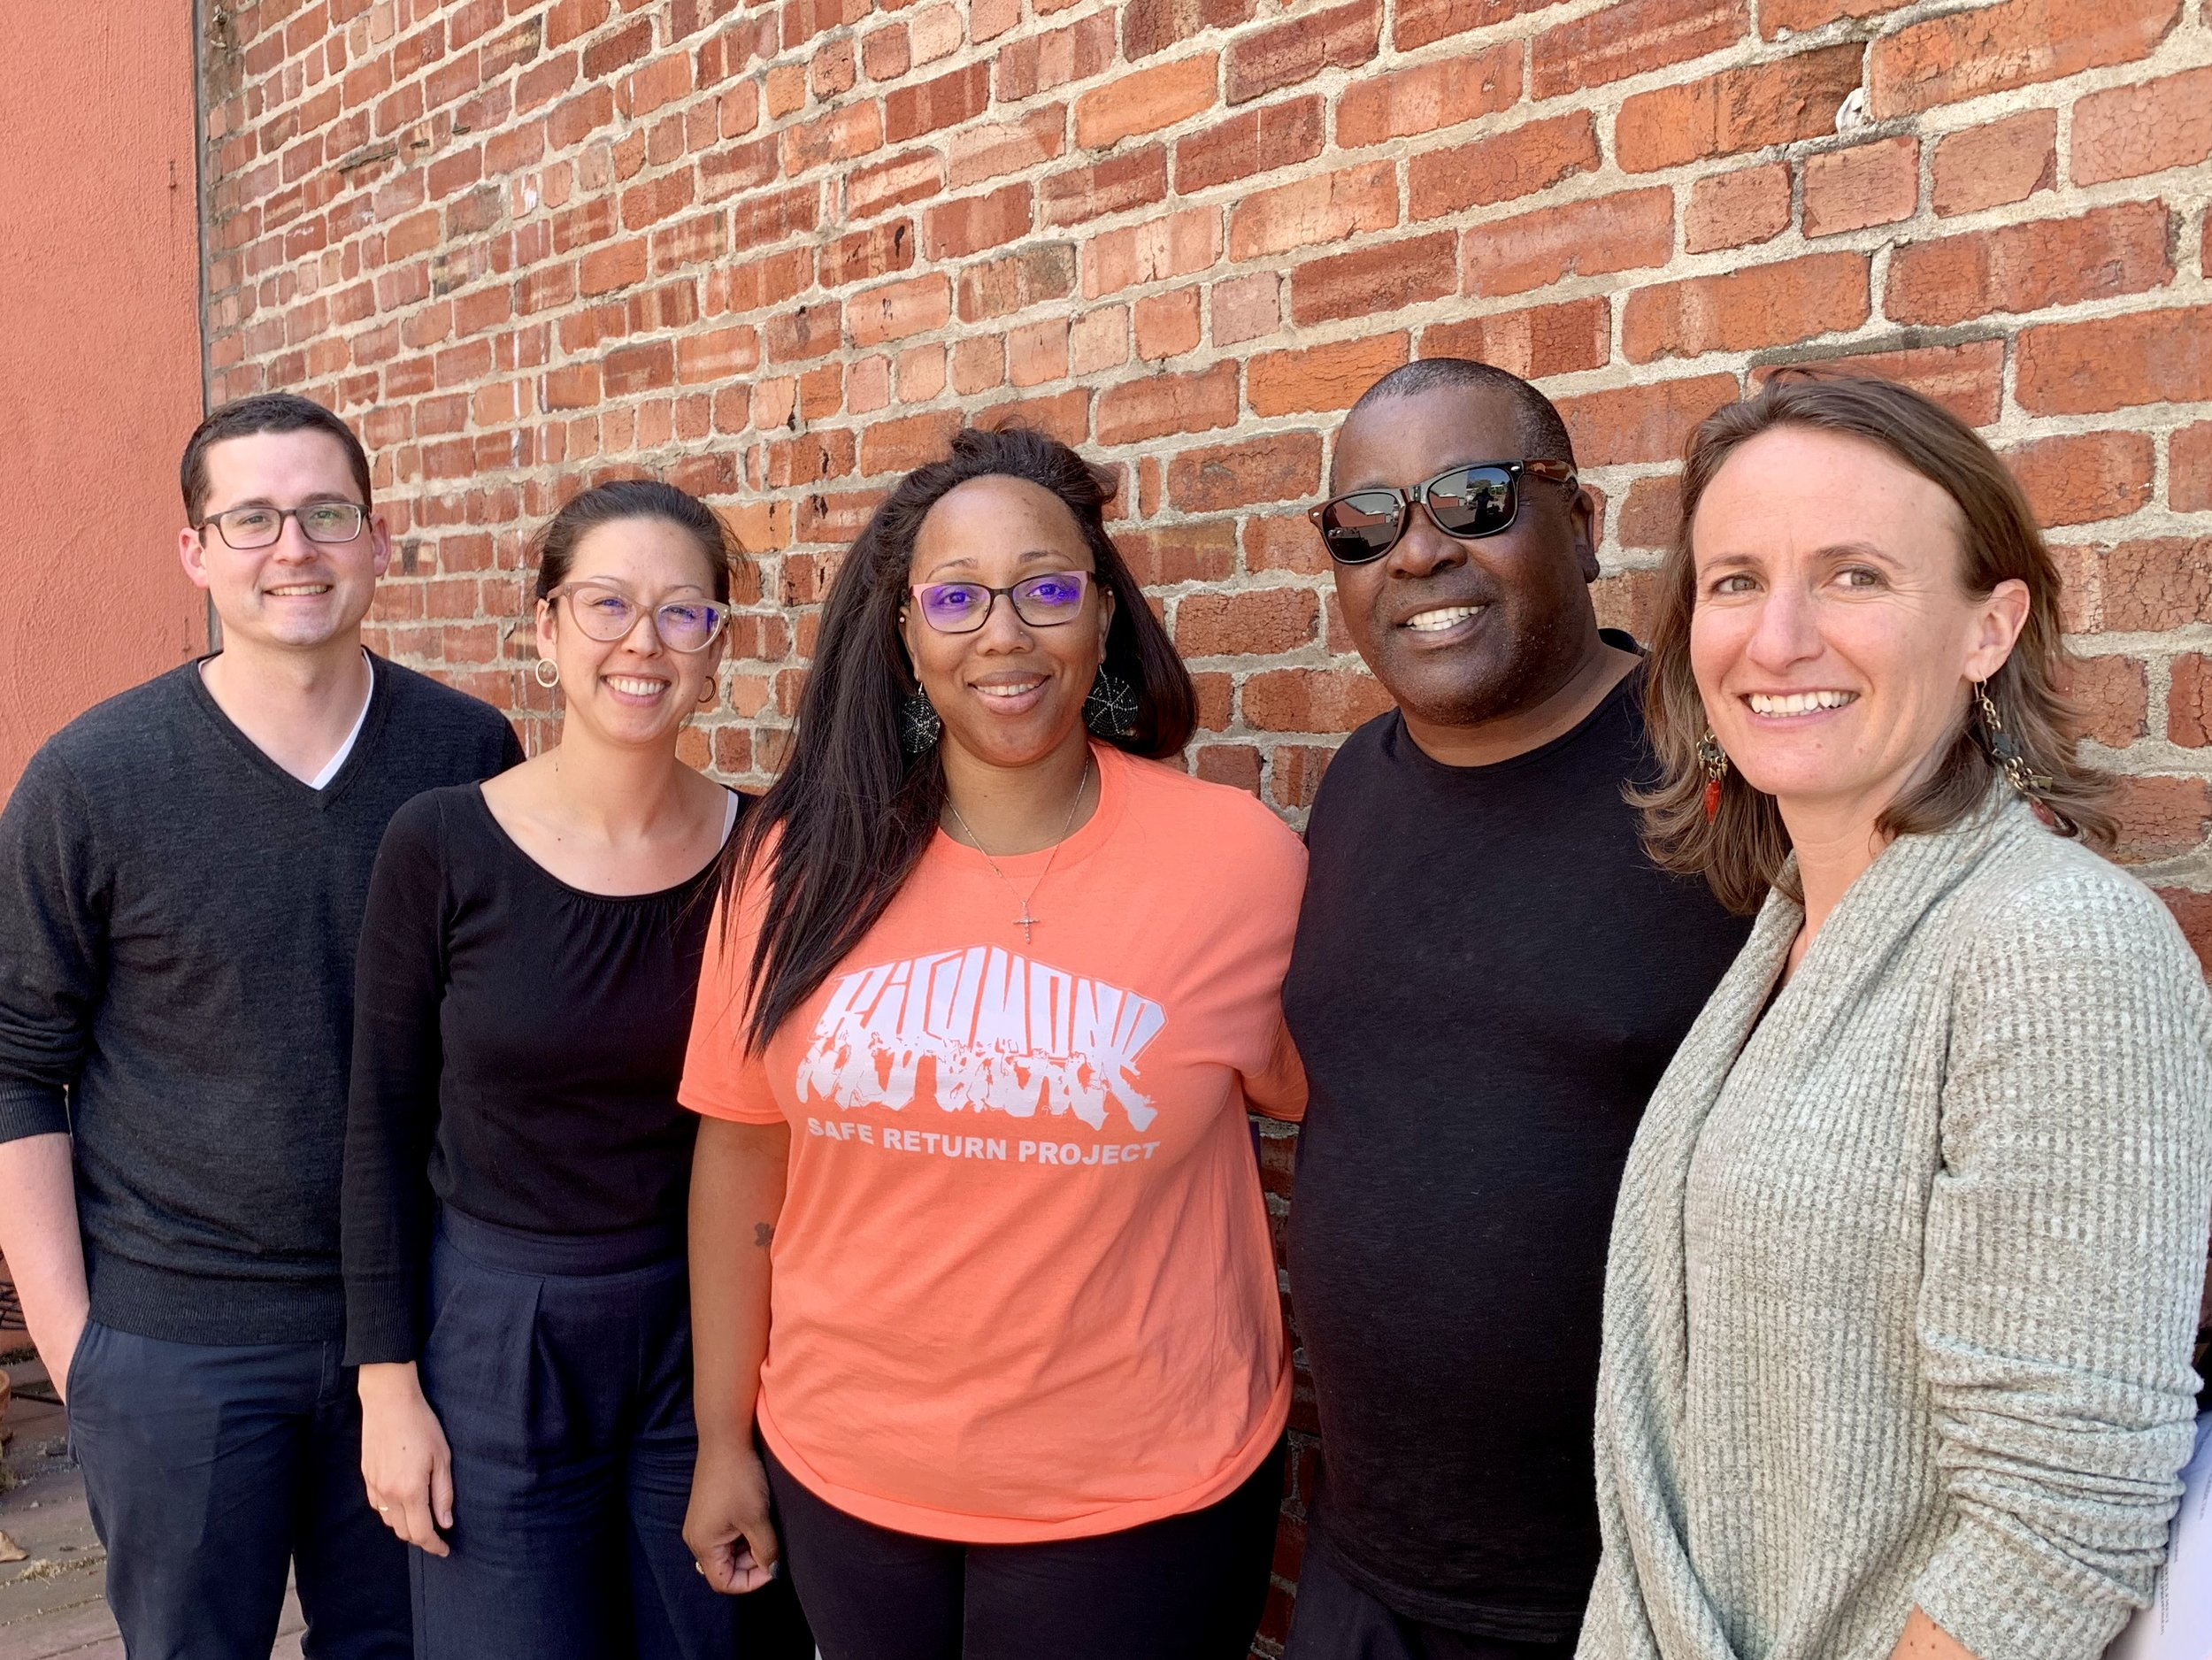 Caption to attached photo (L to R): Daniel Nesbit, Impact Fund, Law Fellow; Lindsay Nako, Impact Fund, Director of Litigation & Training; Tamisha Walker, Plaintiff Safe Return Project, Executive Director; Plaintiff Walter Killian; Rebekah Evenson, Bay Area Legal Aid, Director of Litigation & Advocacy